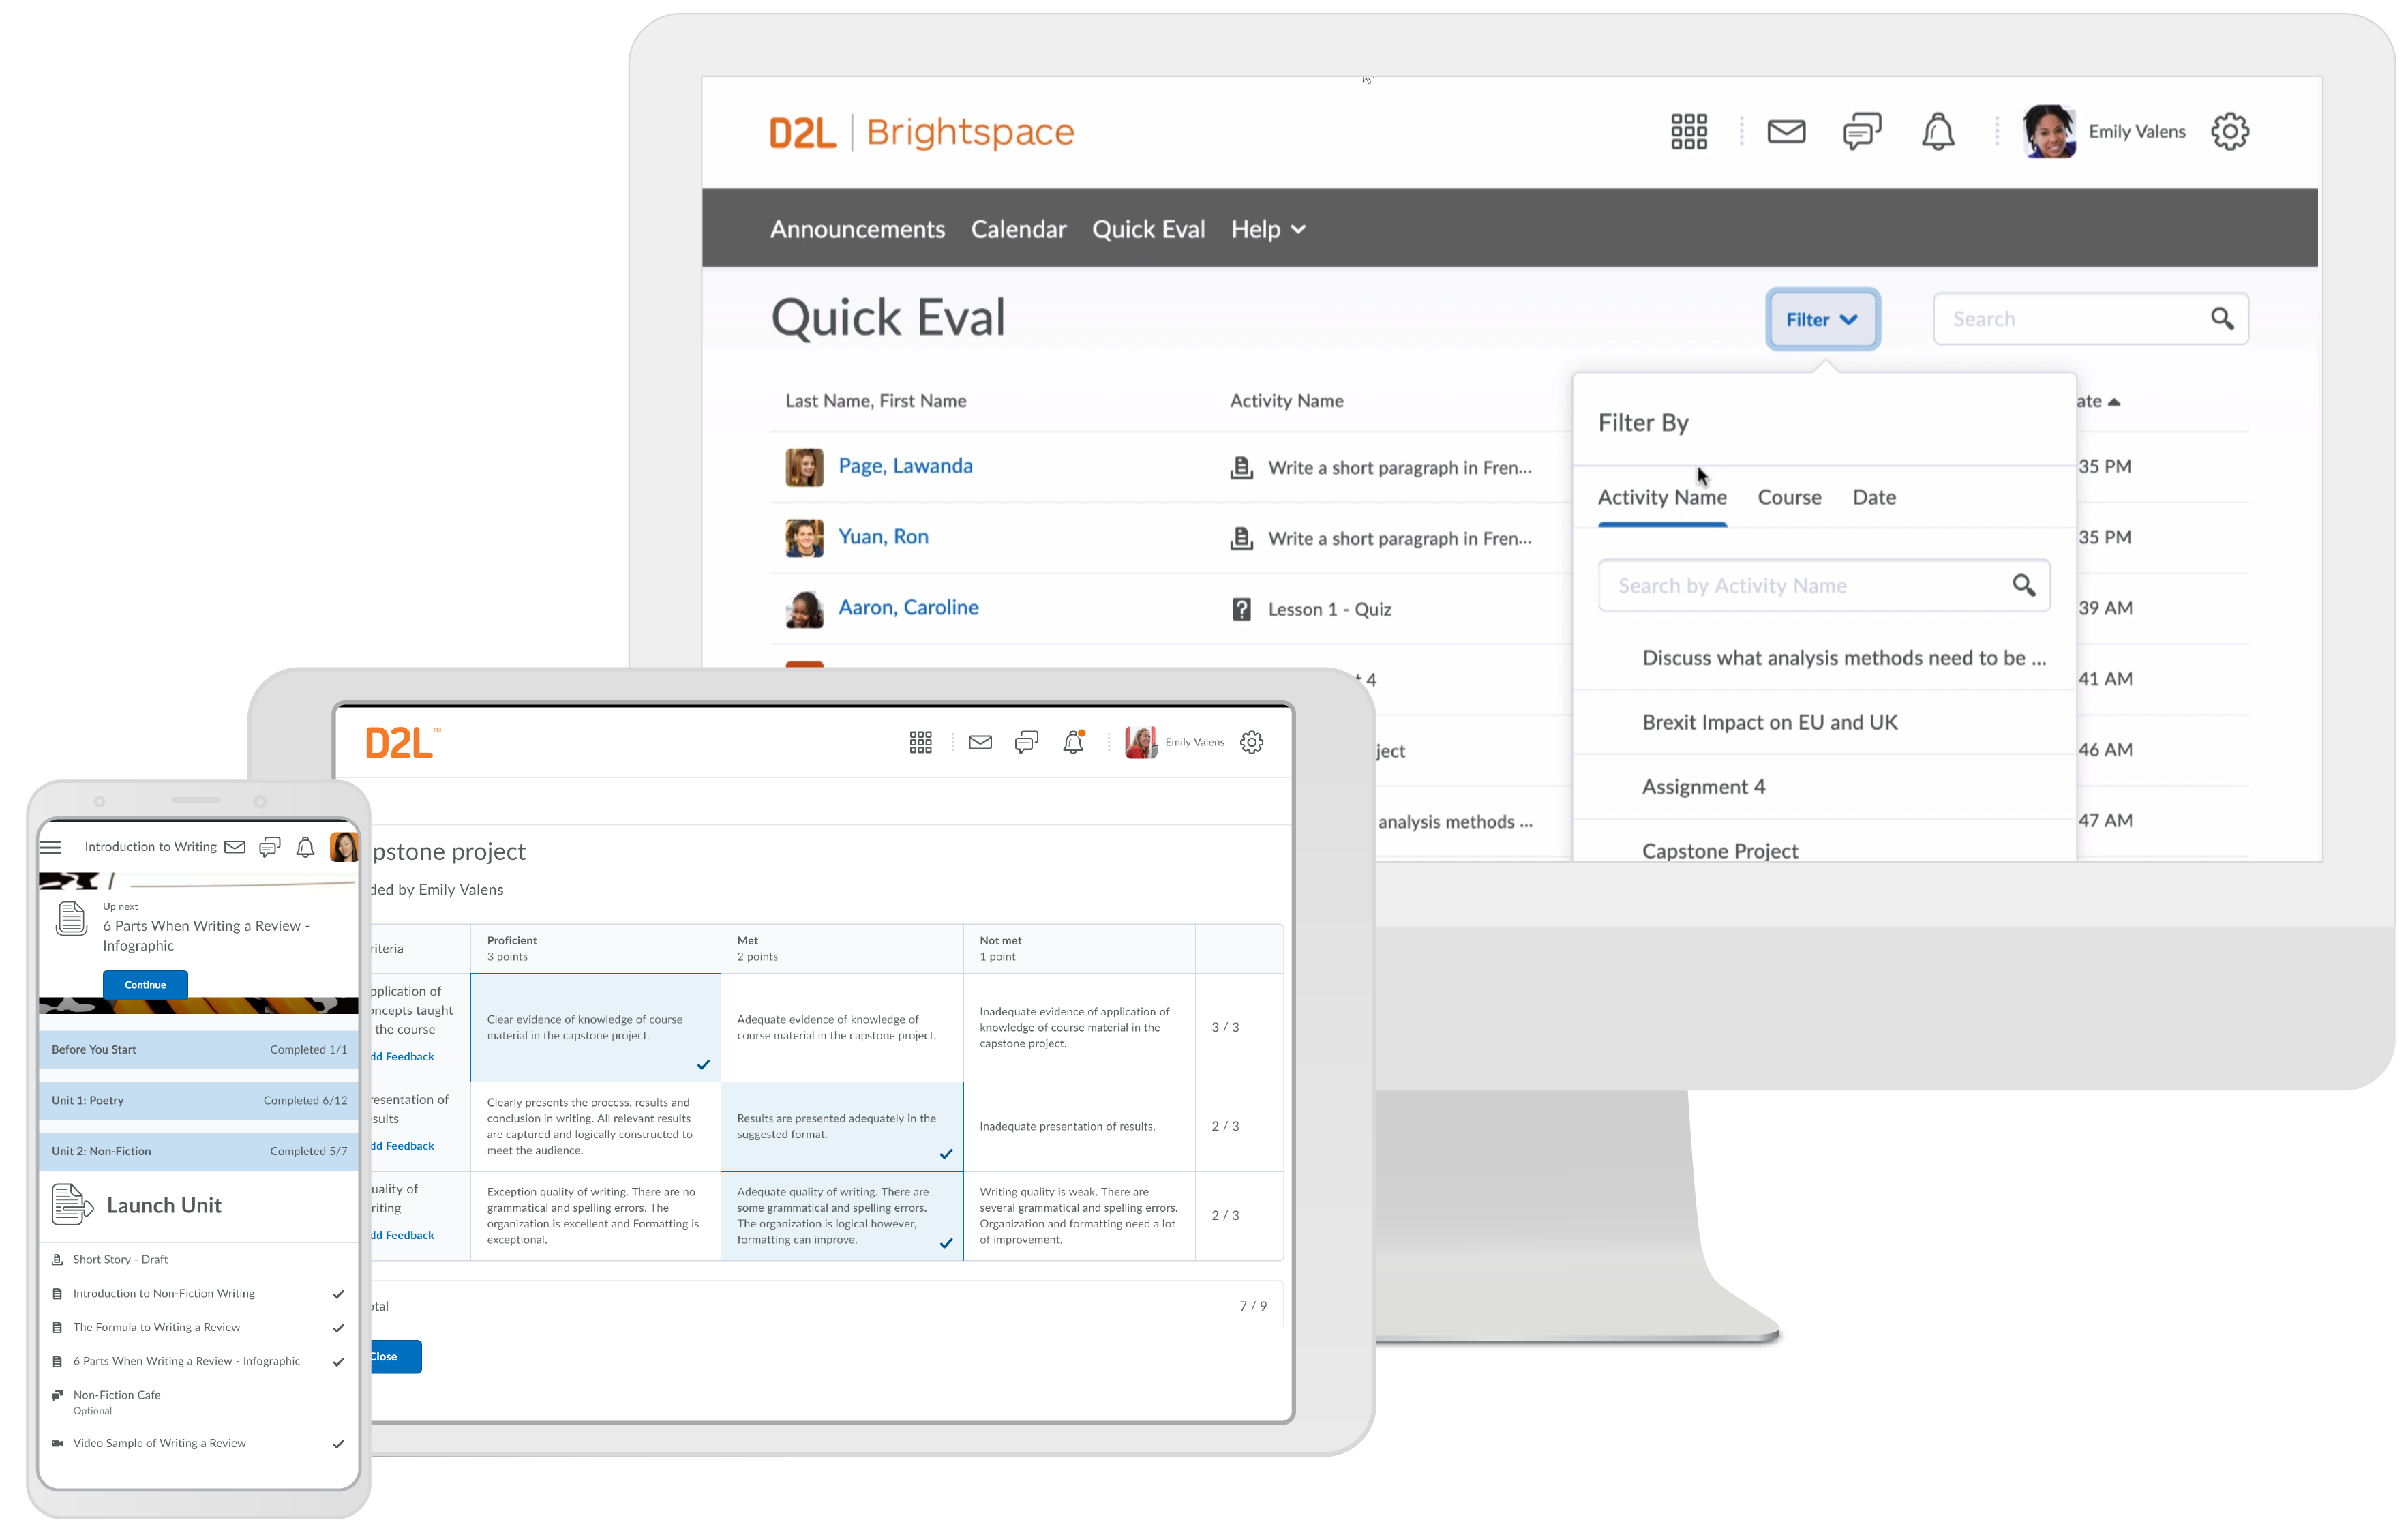 Brightspace Software - Brightspace LMS for education